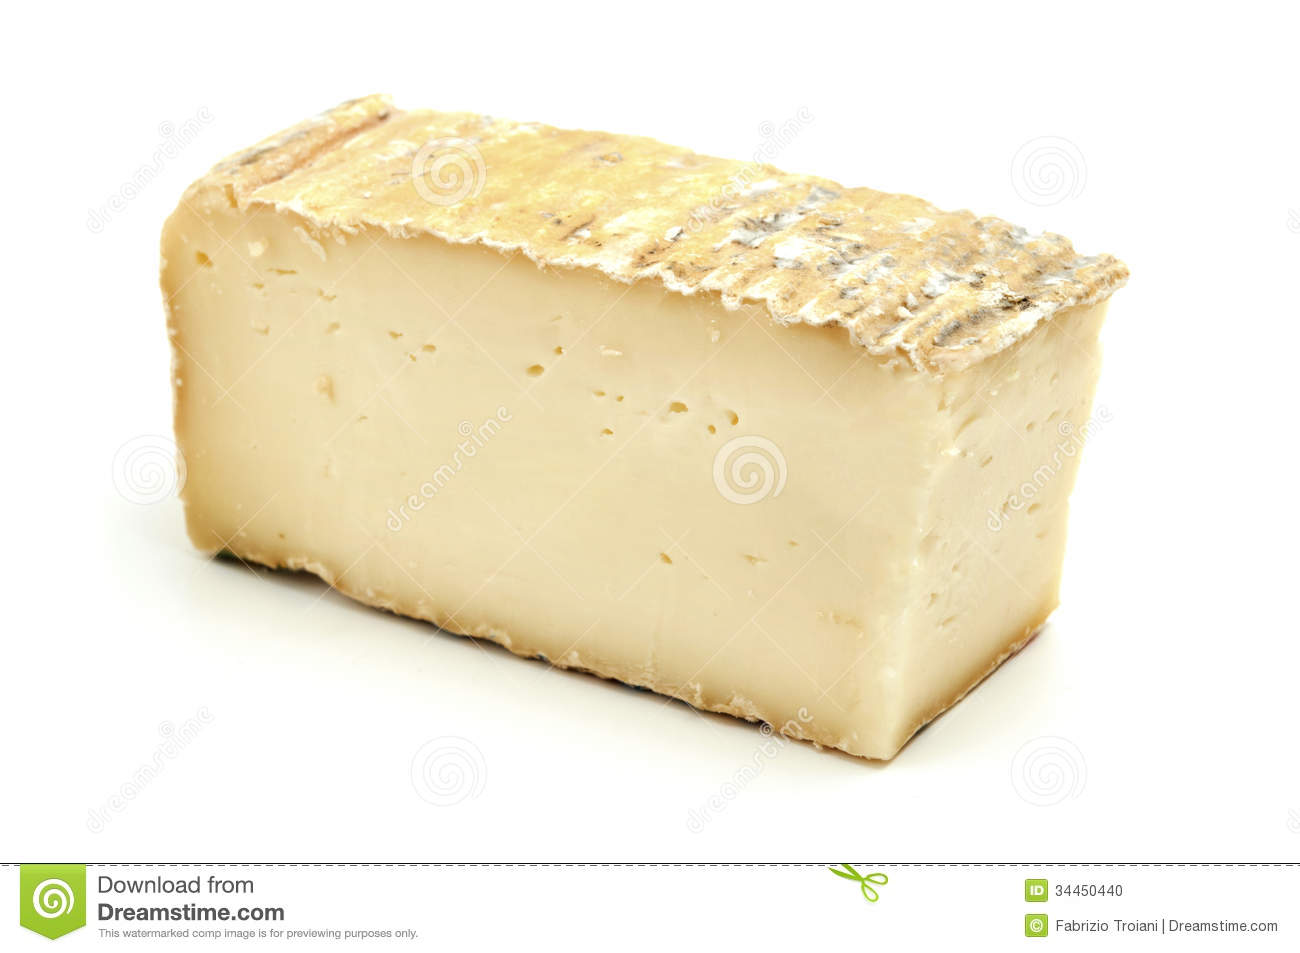 Taleggio Cheese Stock Photo - Image: 34450440